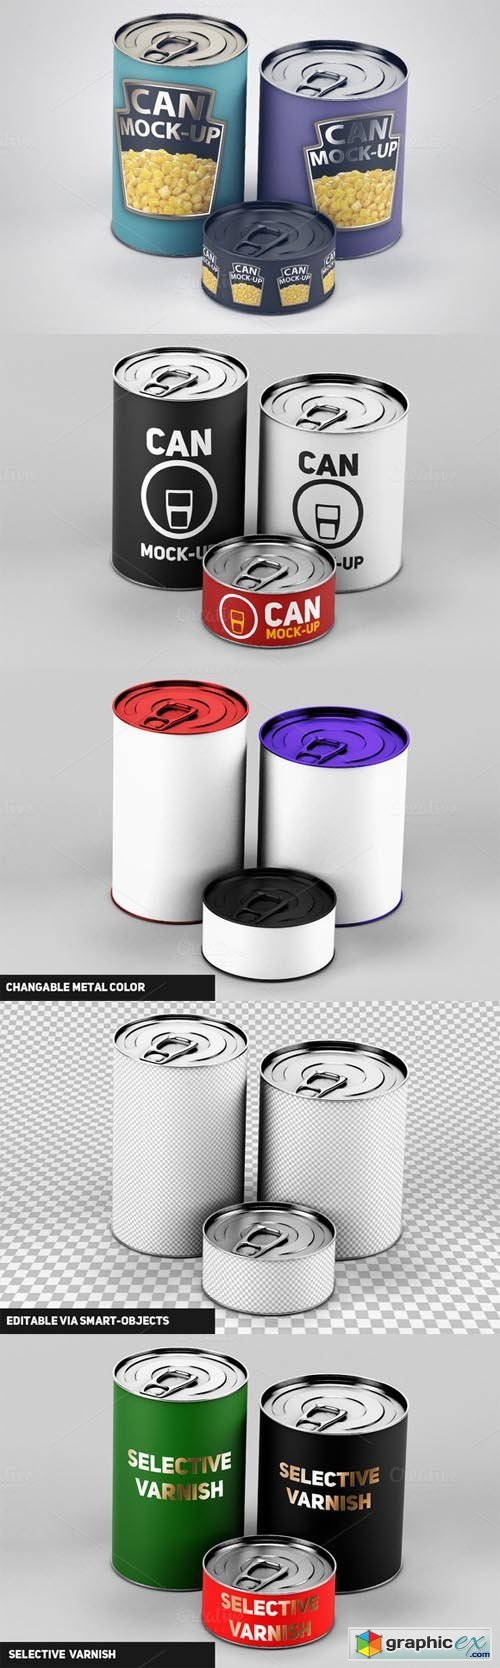 Cans Mock-Up 514948